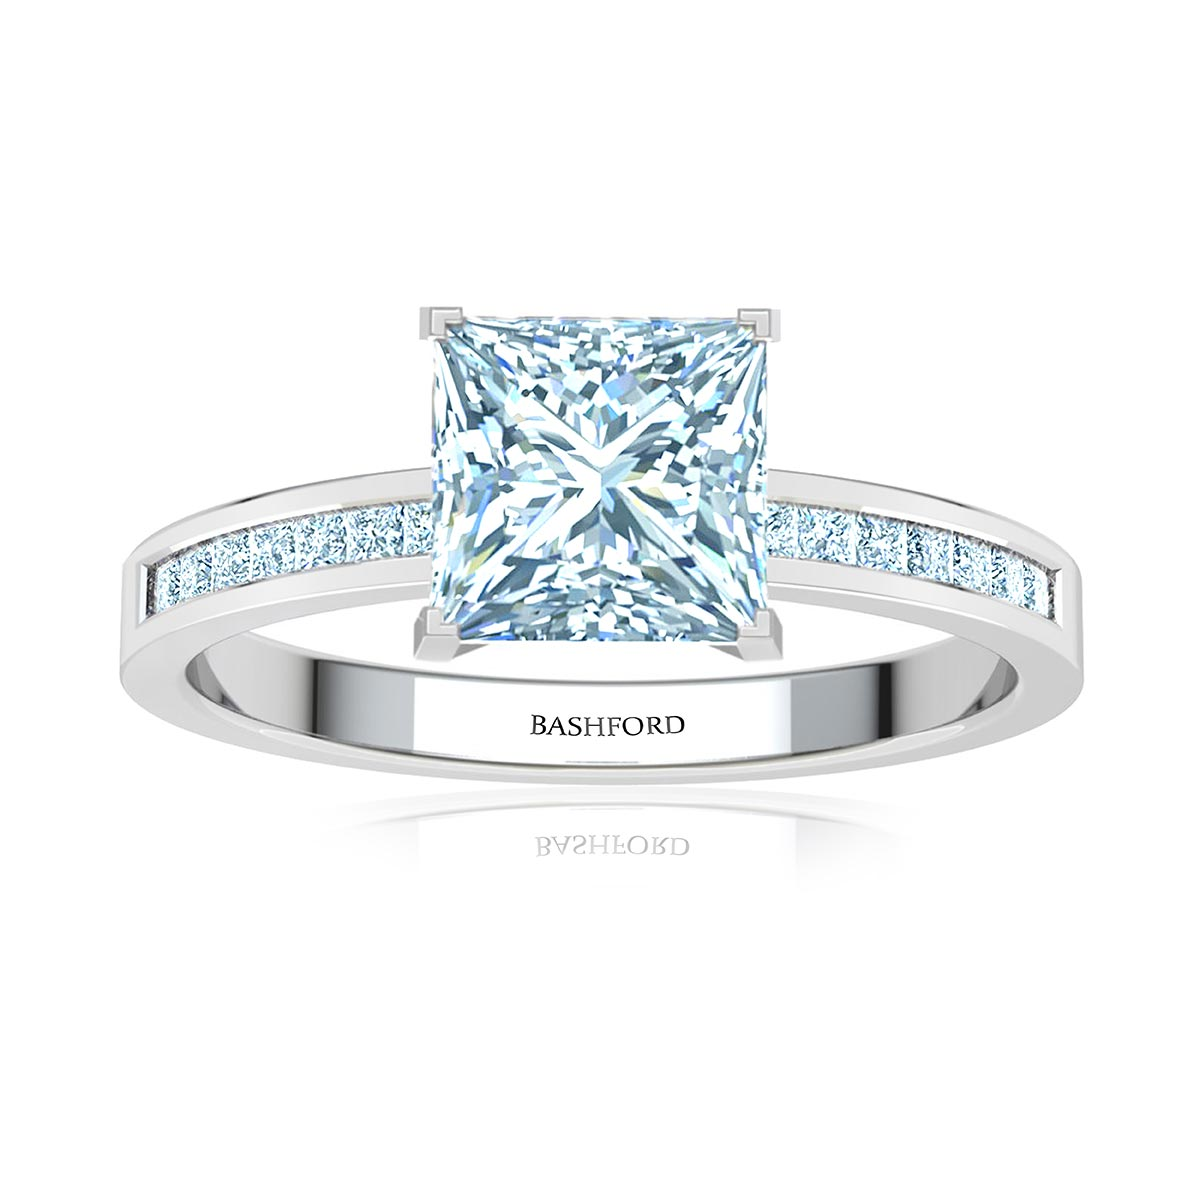 Ari Diamond Ring (with SI1, D, 1/2 Carat Princess Diamond)